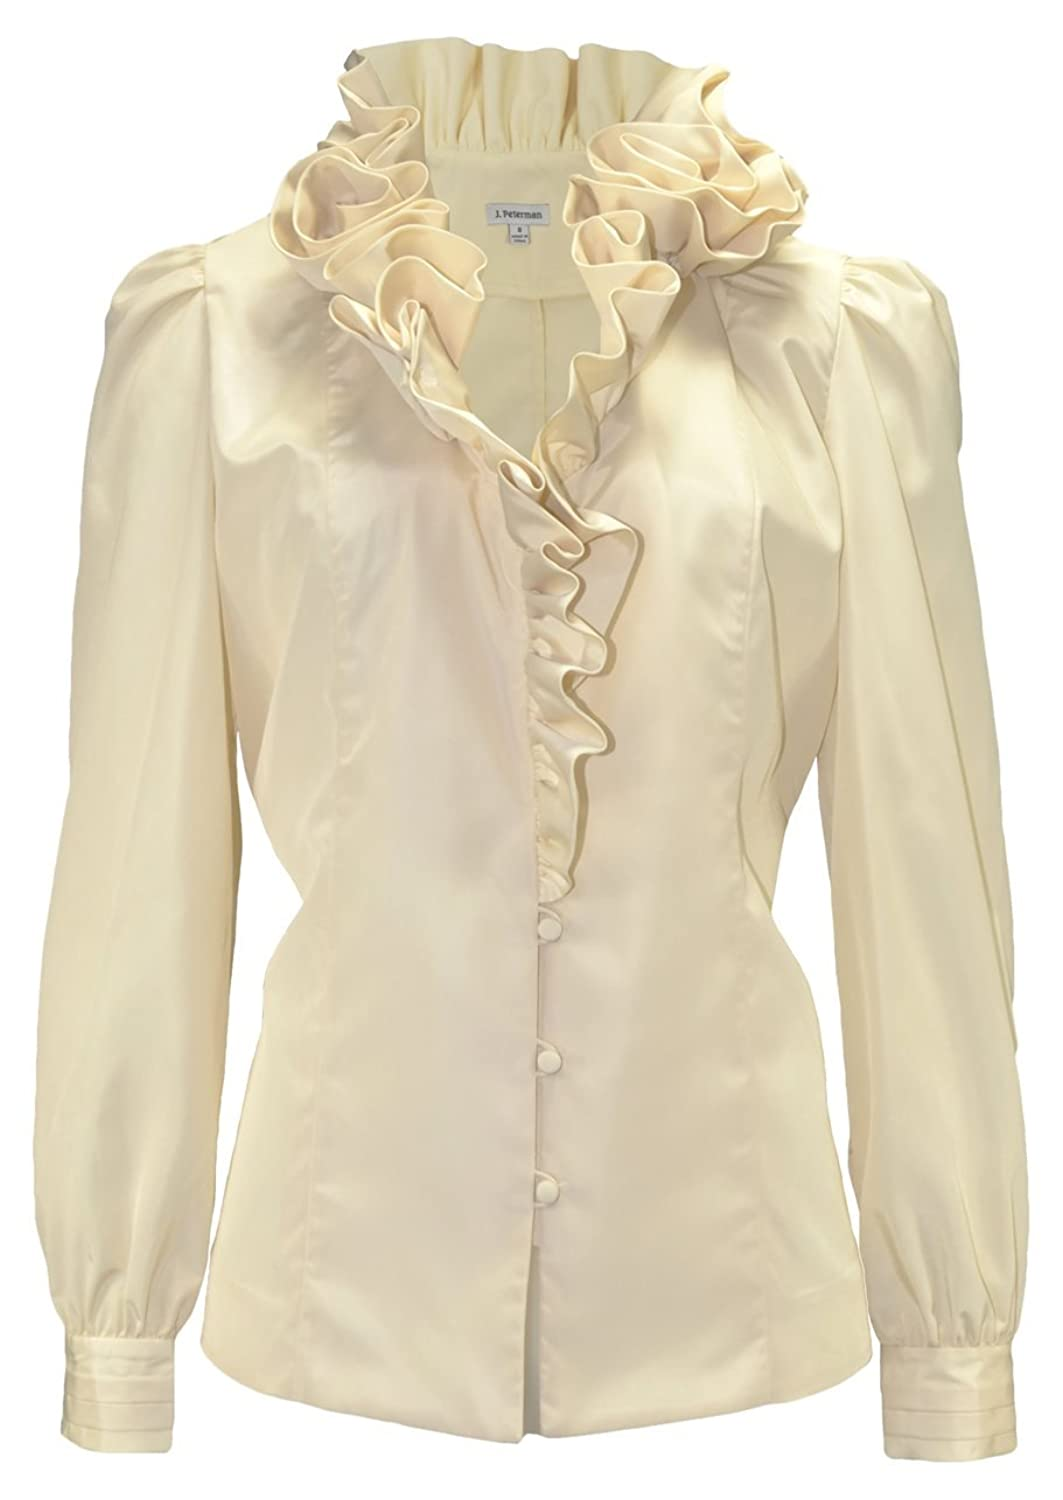 Edwardian Style Blouses Ruffle Neck Blouse $263.35 AT vintagedancer.com